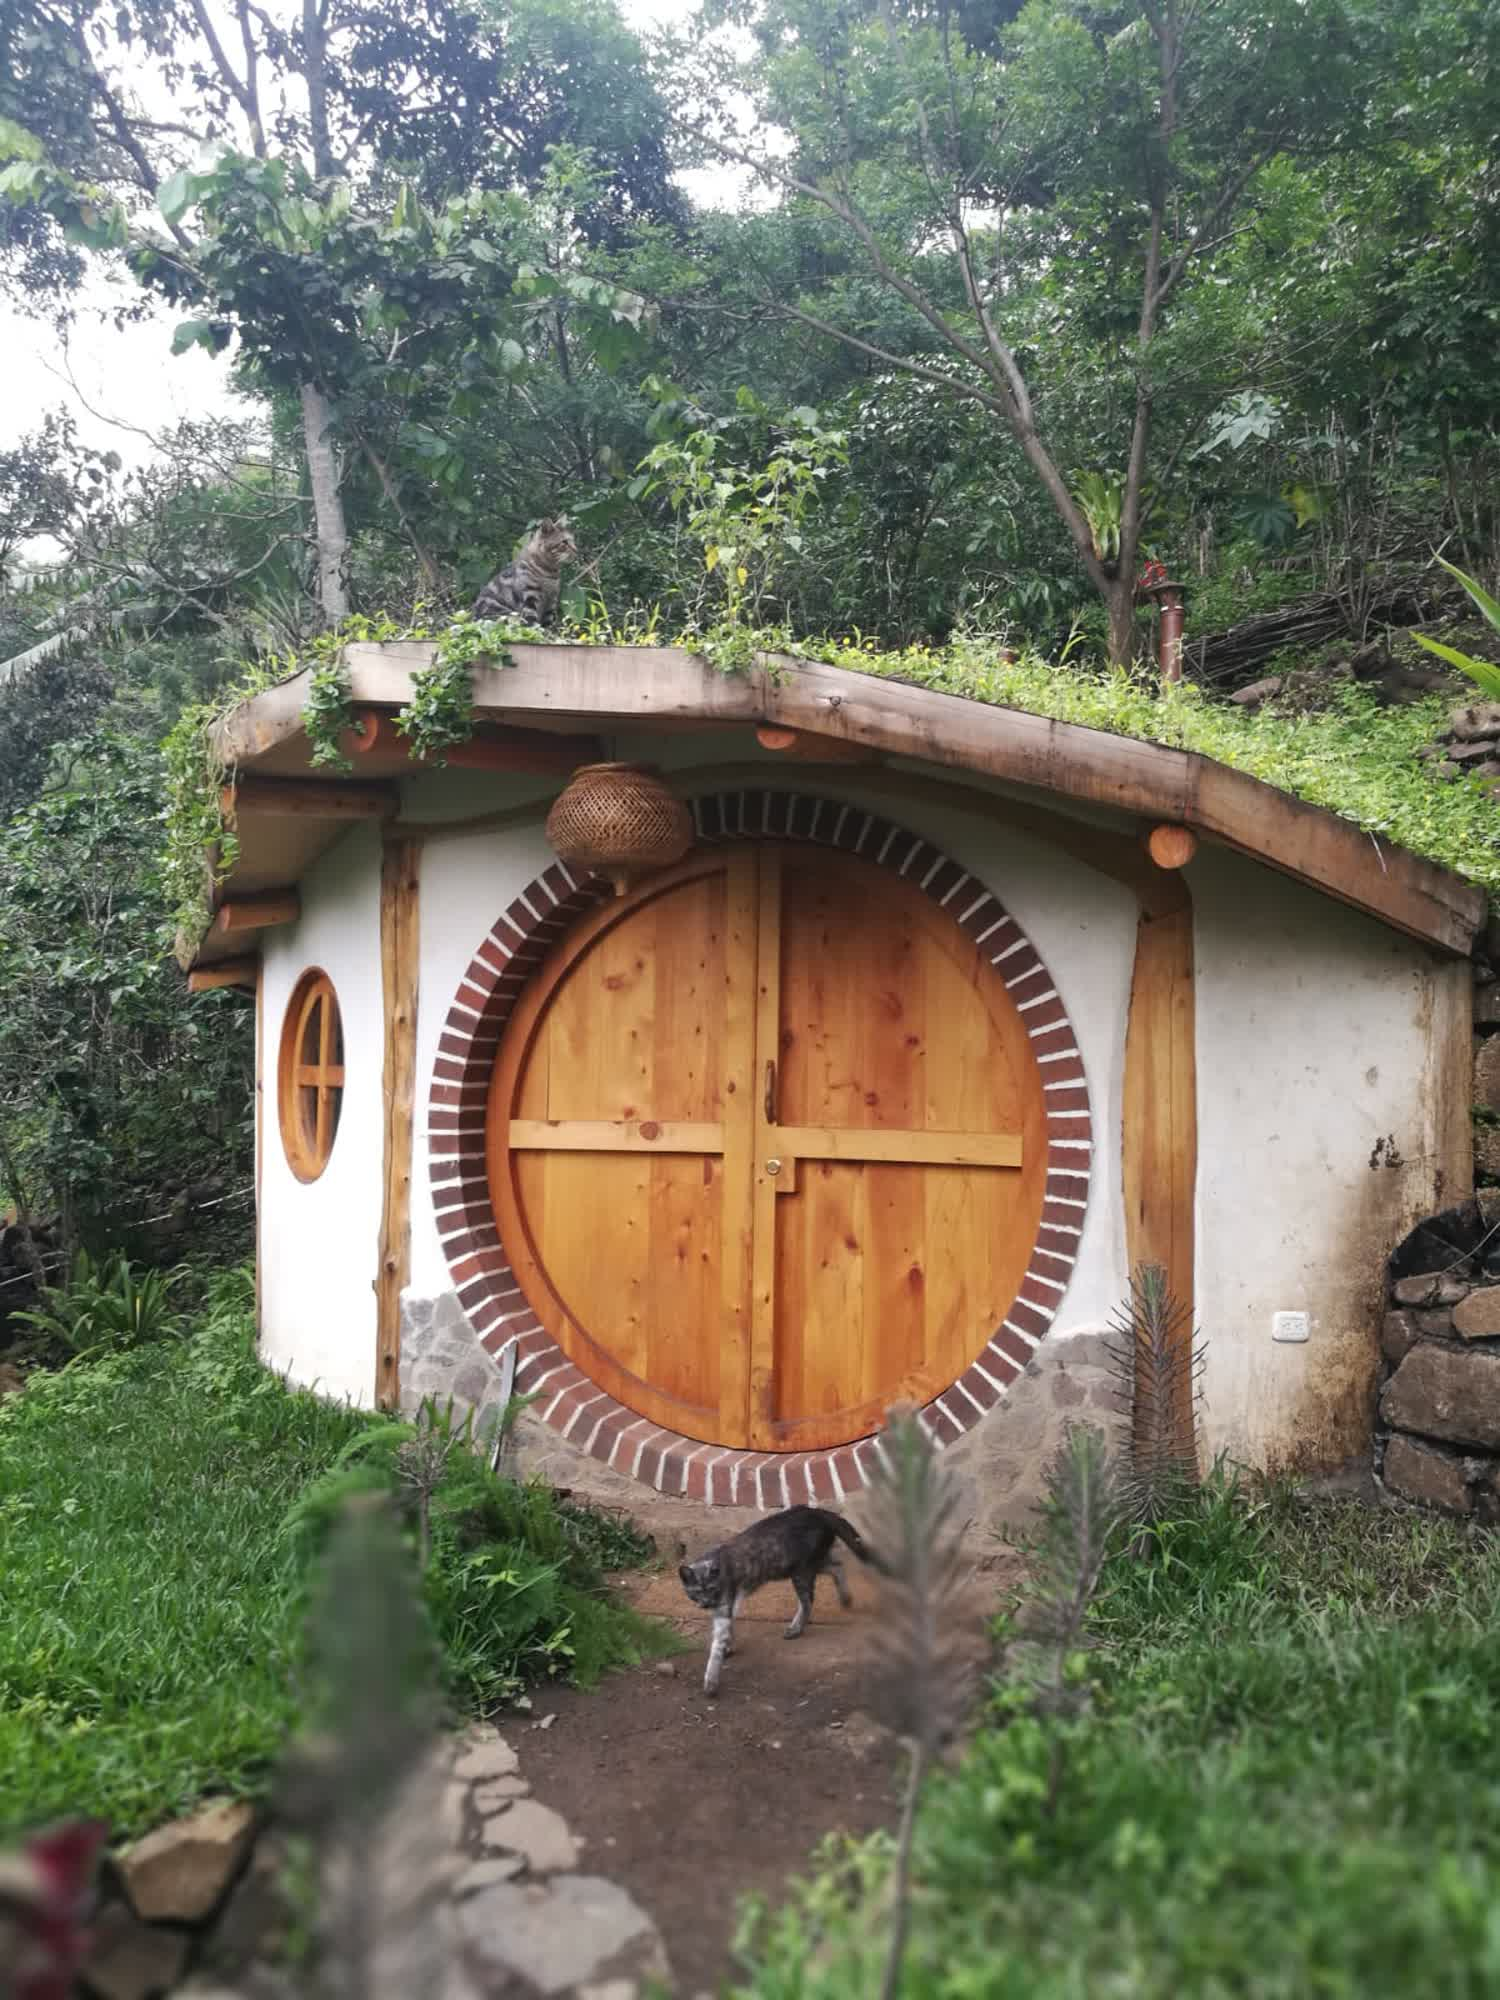 5201_hobbit house_1500x1000.jpeg